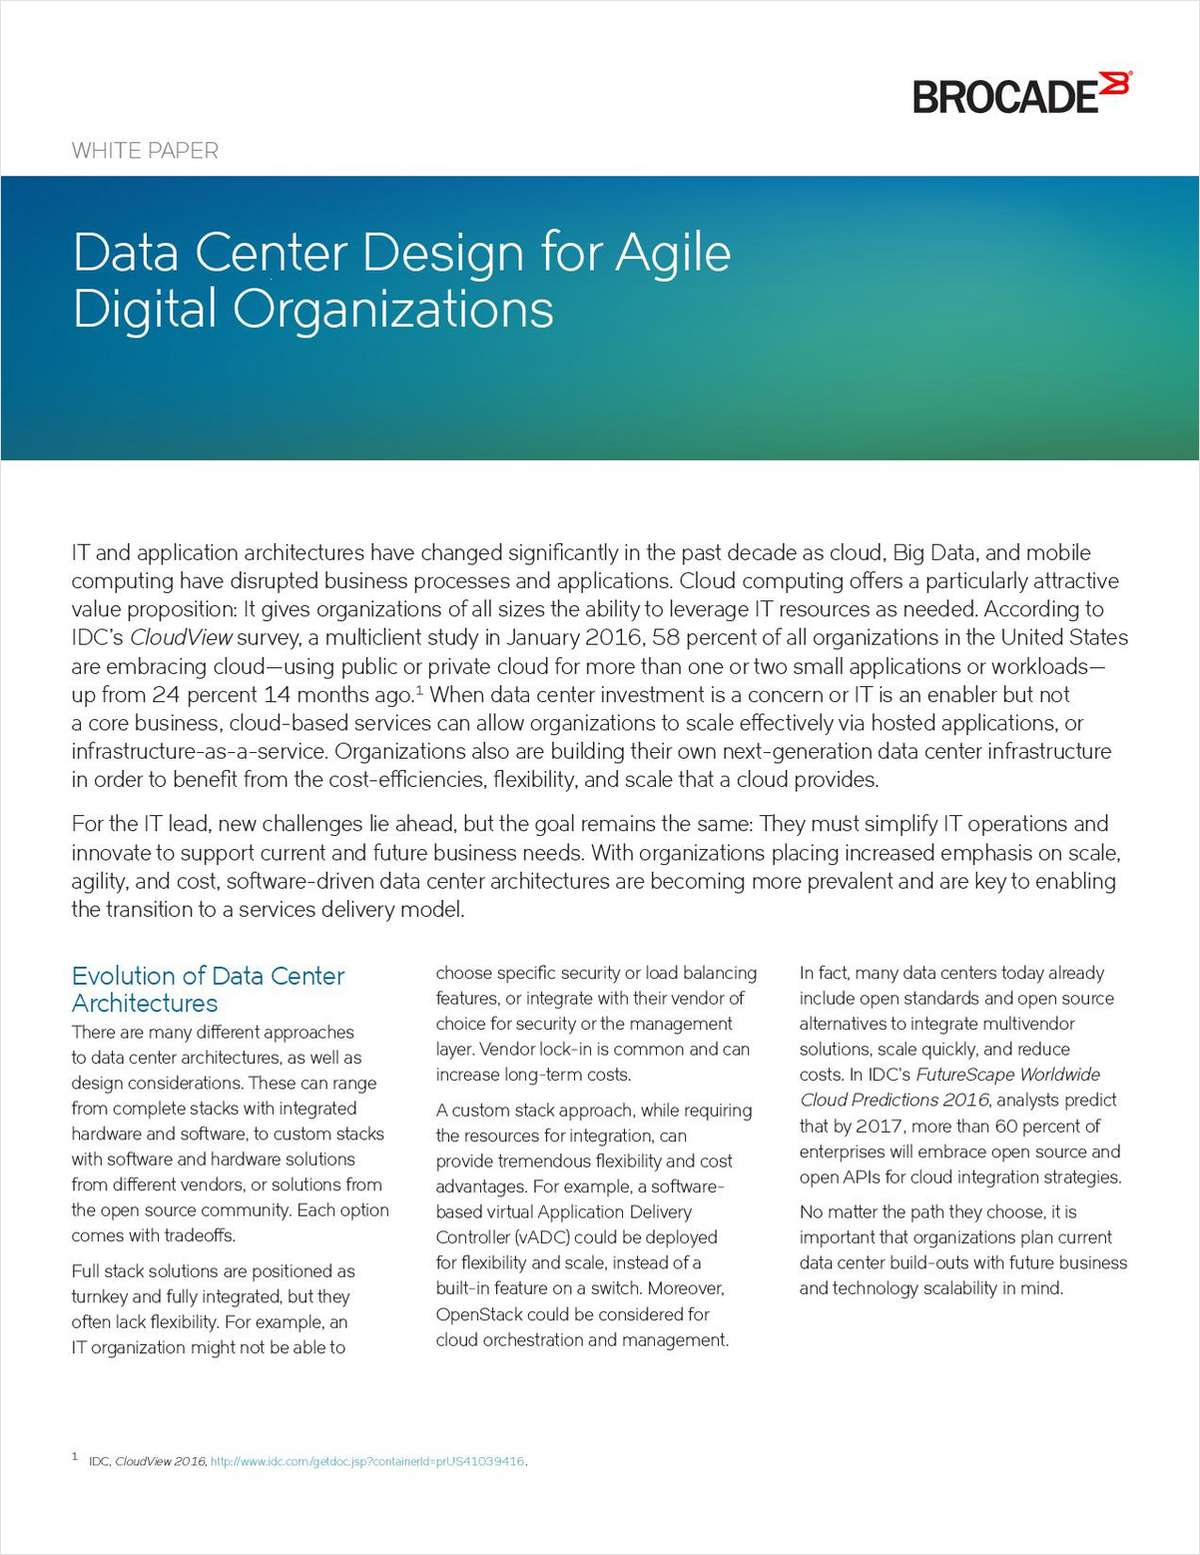 Building Agile Data Centers